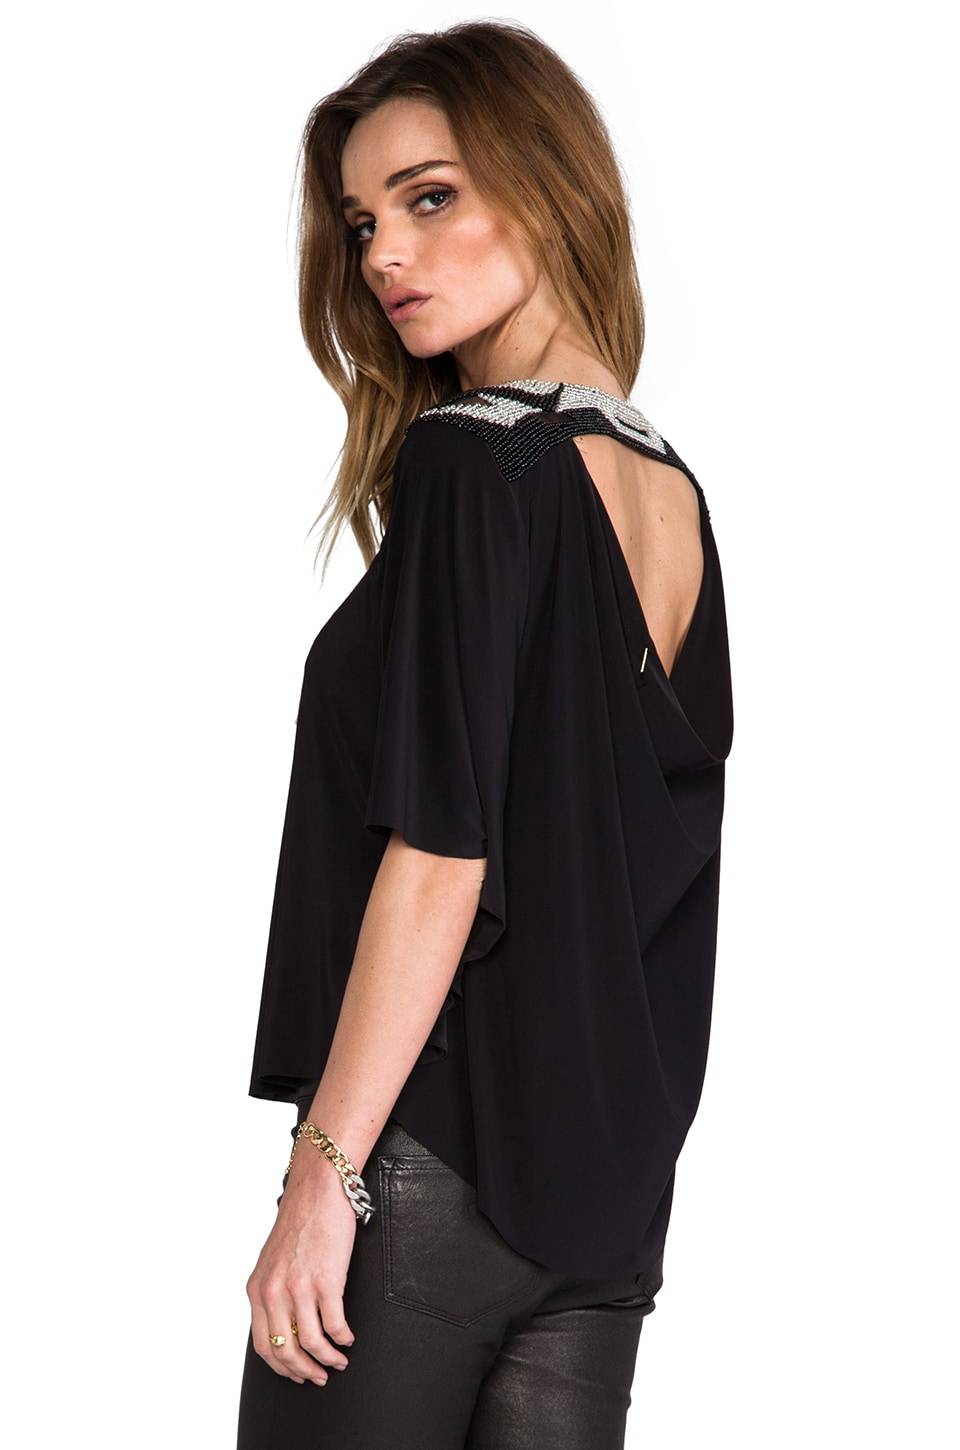 T-Bags LosAngeles T-Bags Los Angeles Back Cut Out Blouse in Black